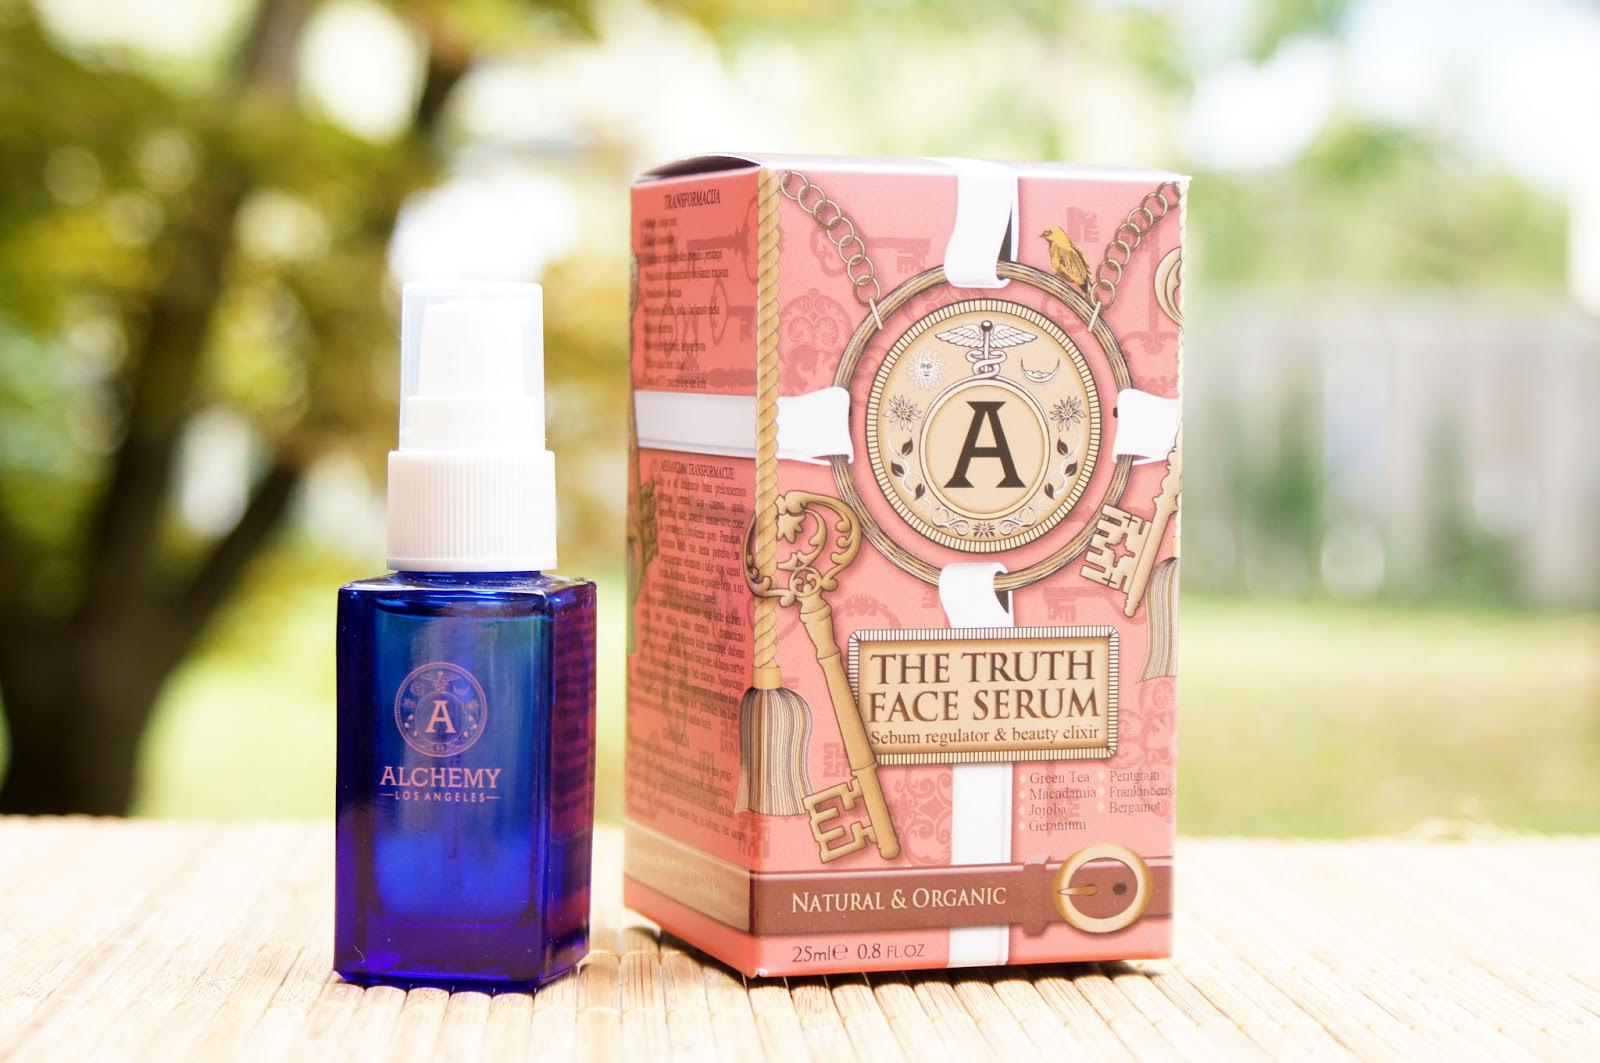 THE TRUTH FACE SERUM ALCHEMY